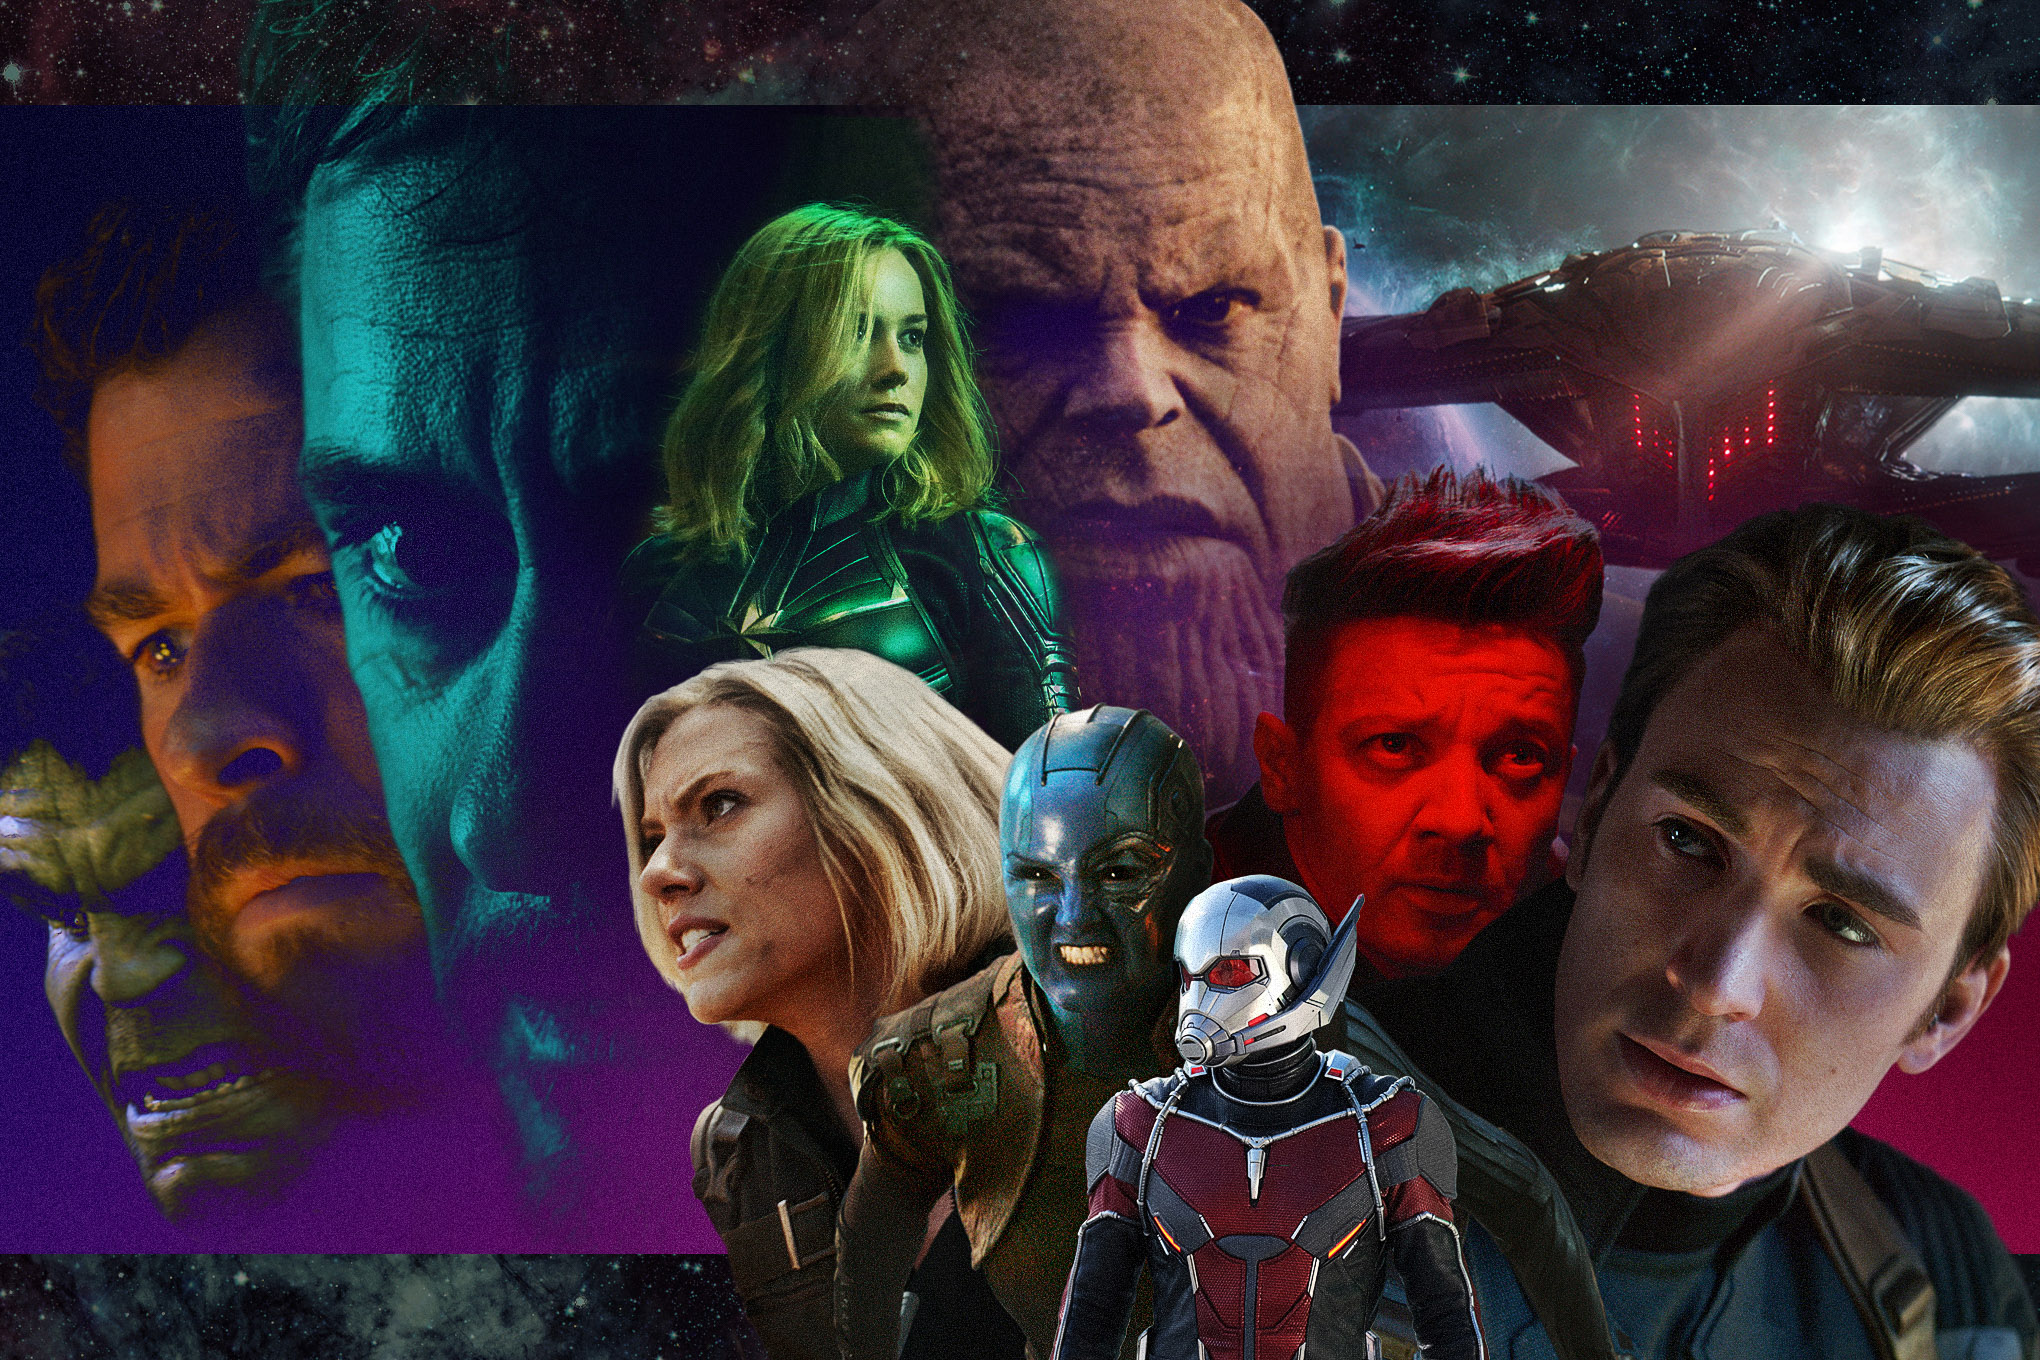 Avengers: Endgame gives Iron Man, Captain America, and the other heroes what they deserve